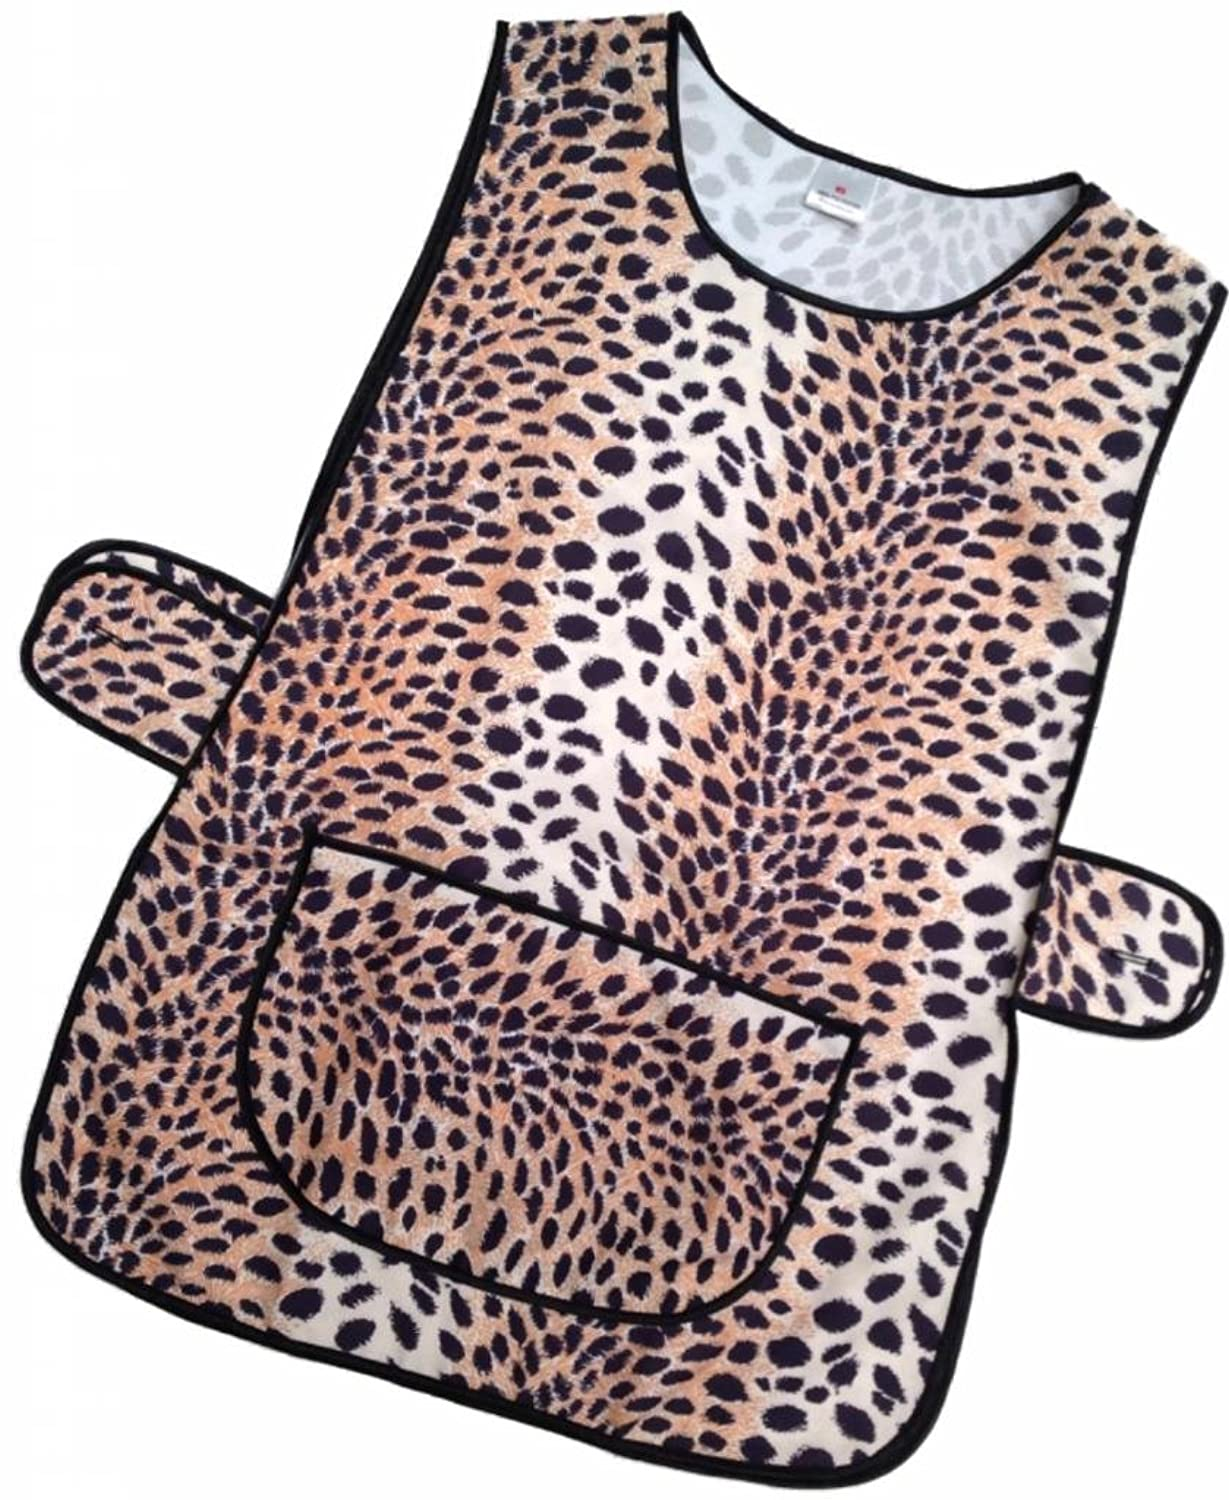 White tabard apron - Hduk Top Quality Ladies Animal Print Home Work Tabard Apron With Large Front Pocket And